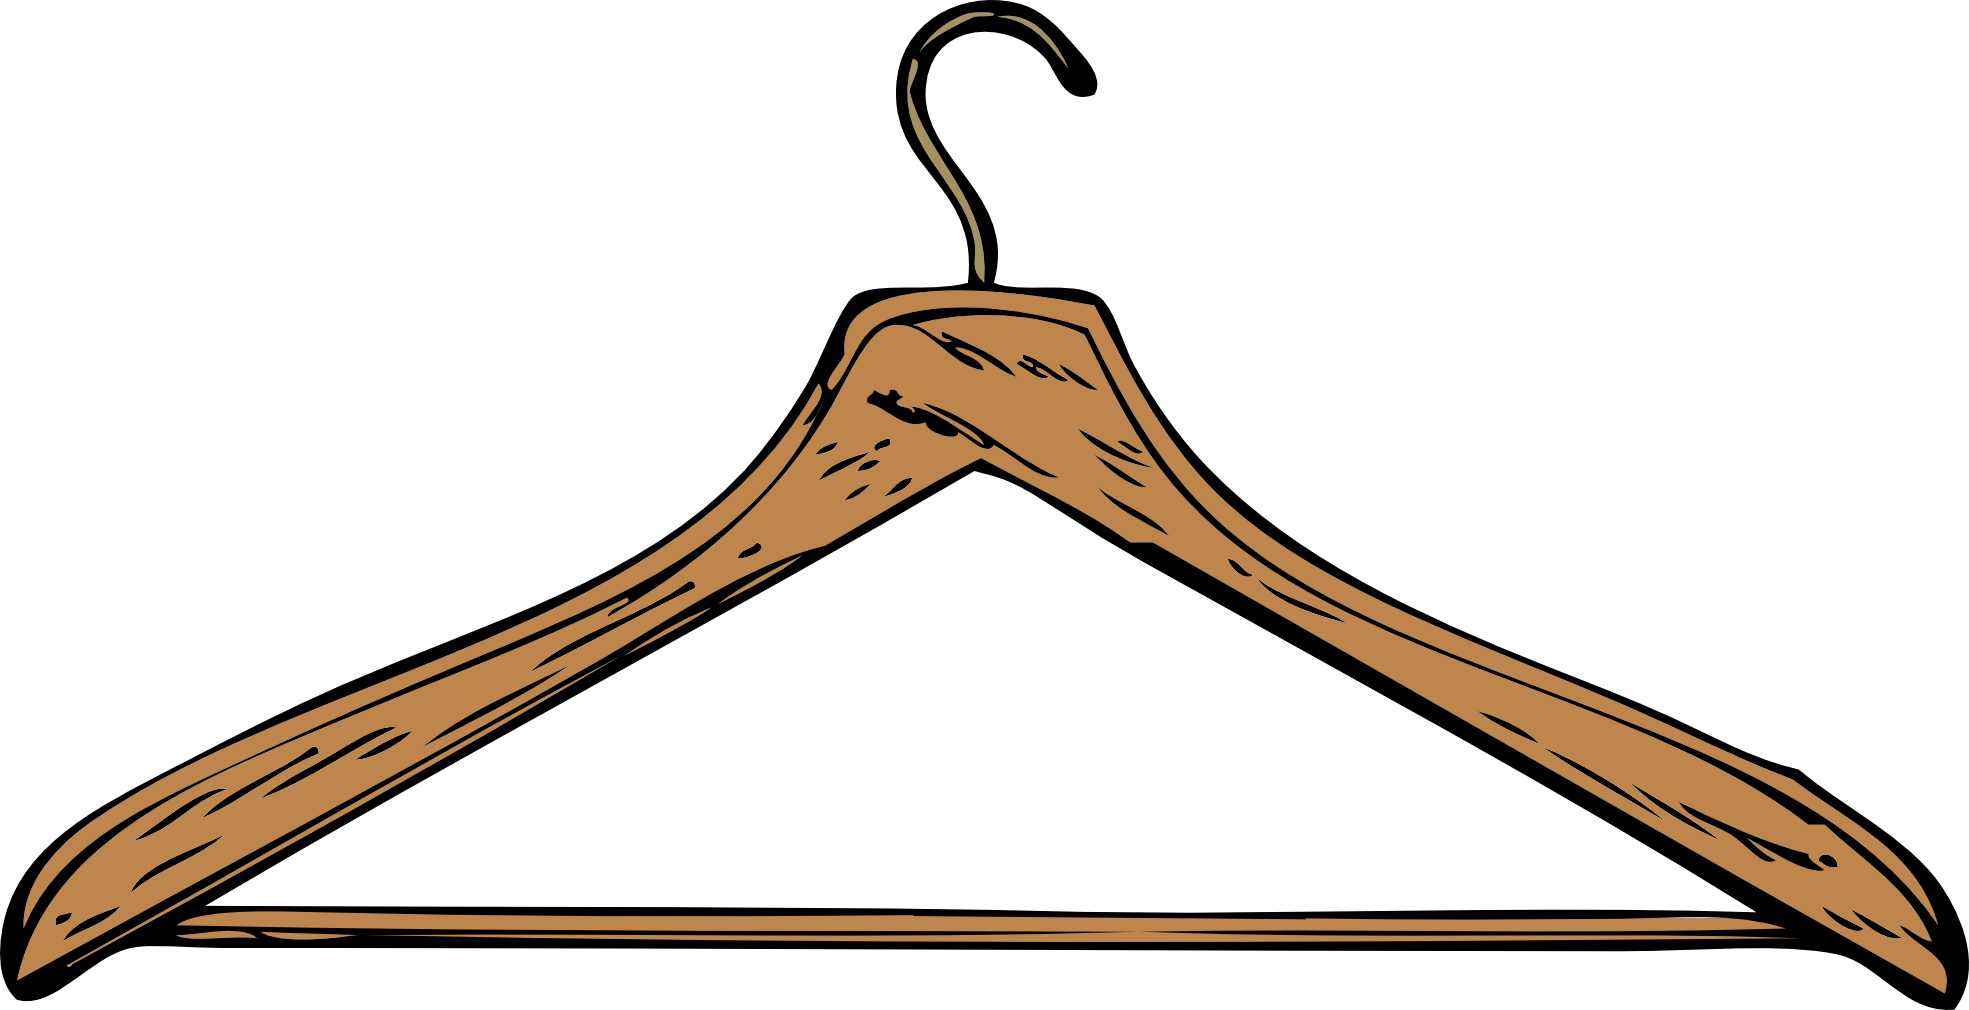 Hanger clipart formal dress. Viewing panda free images